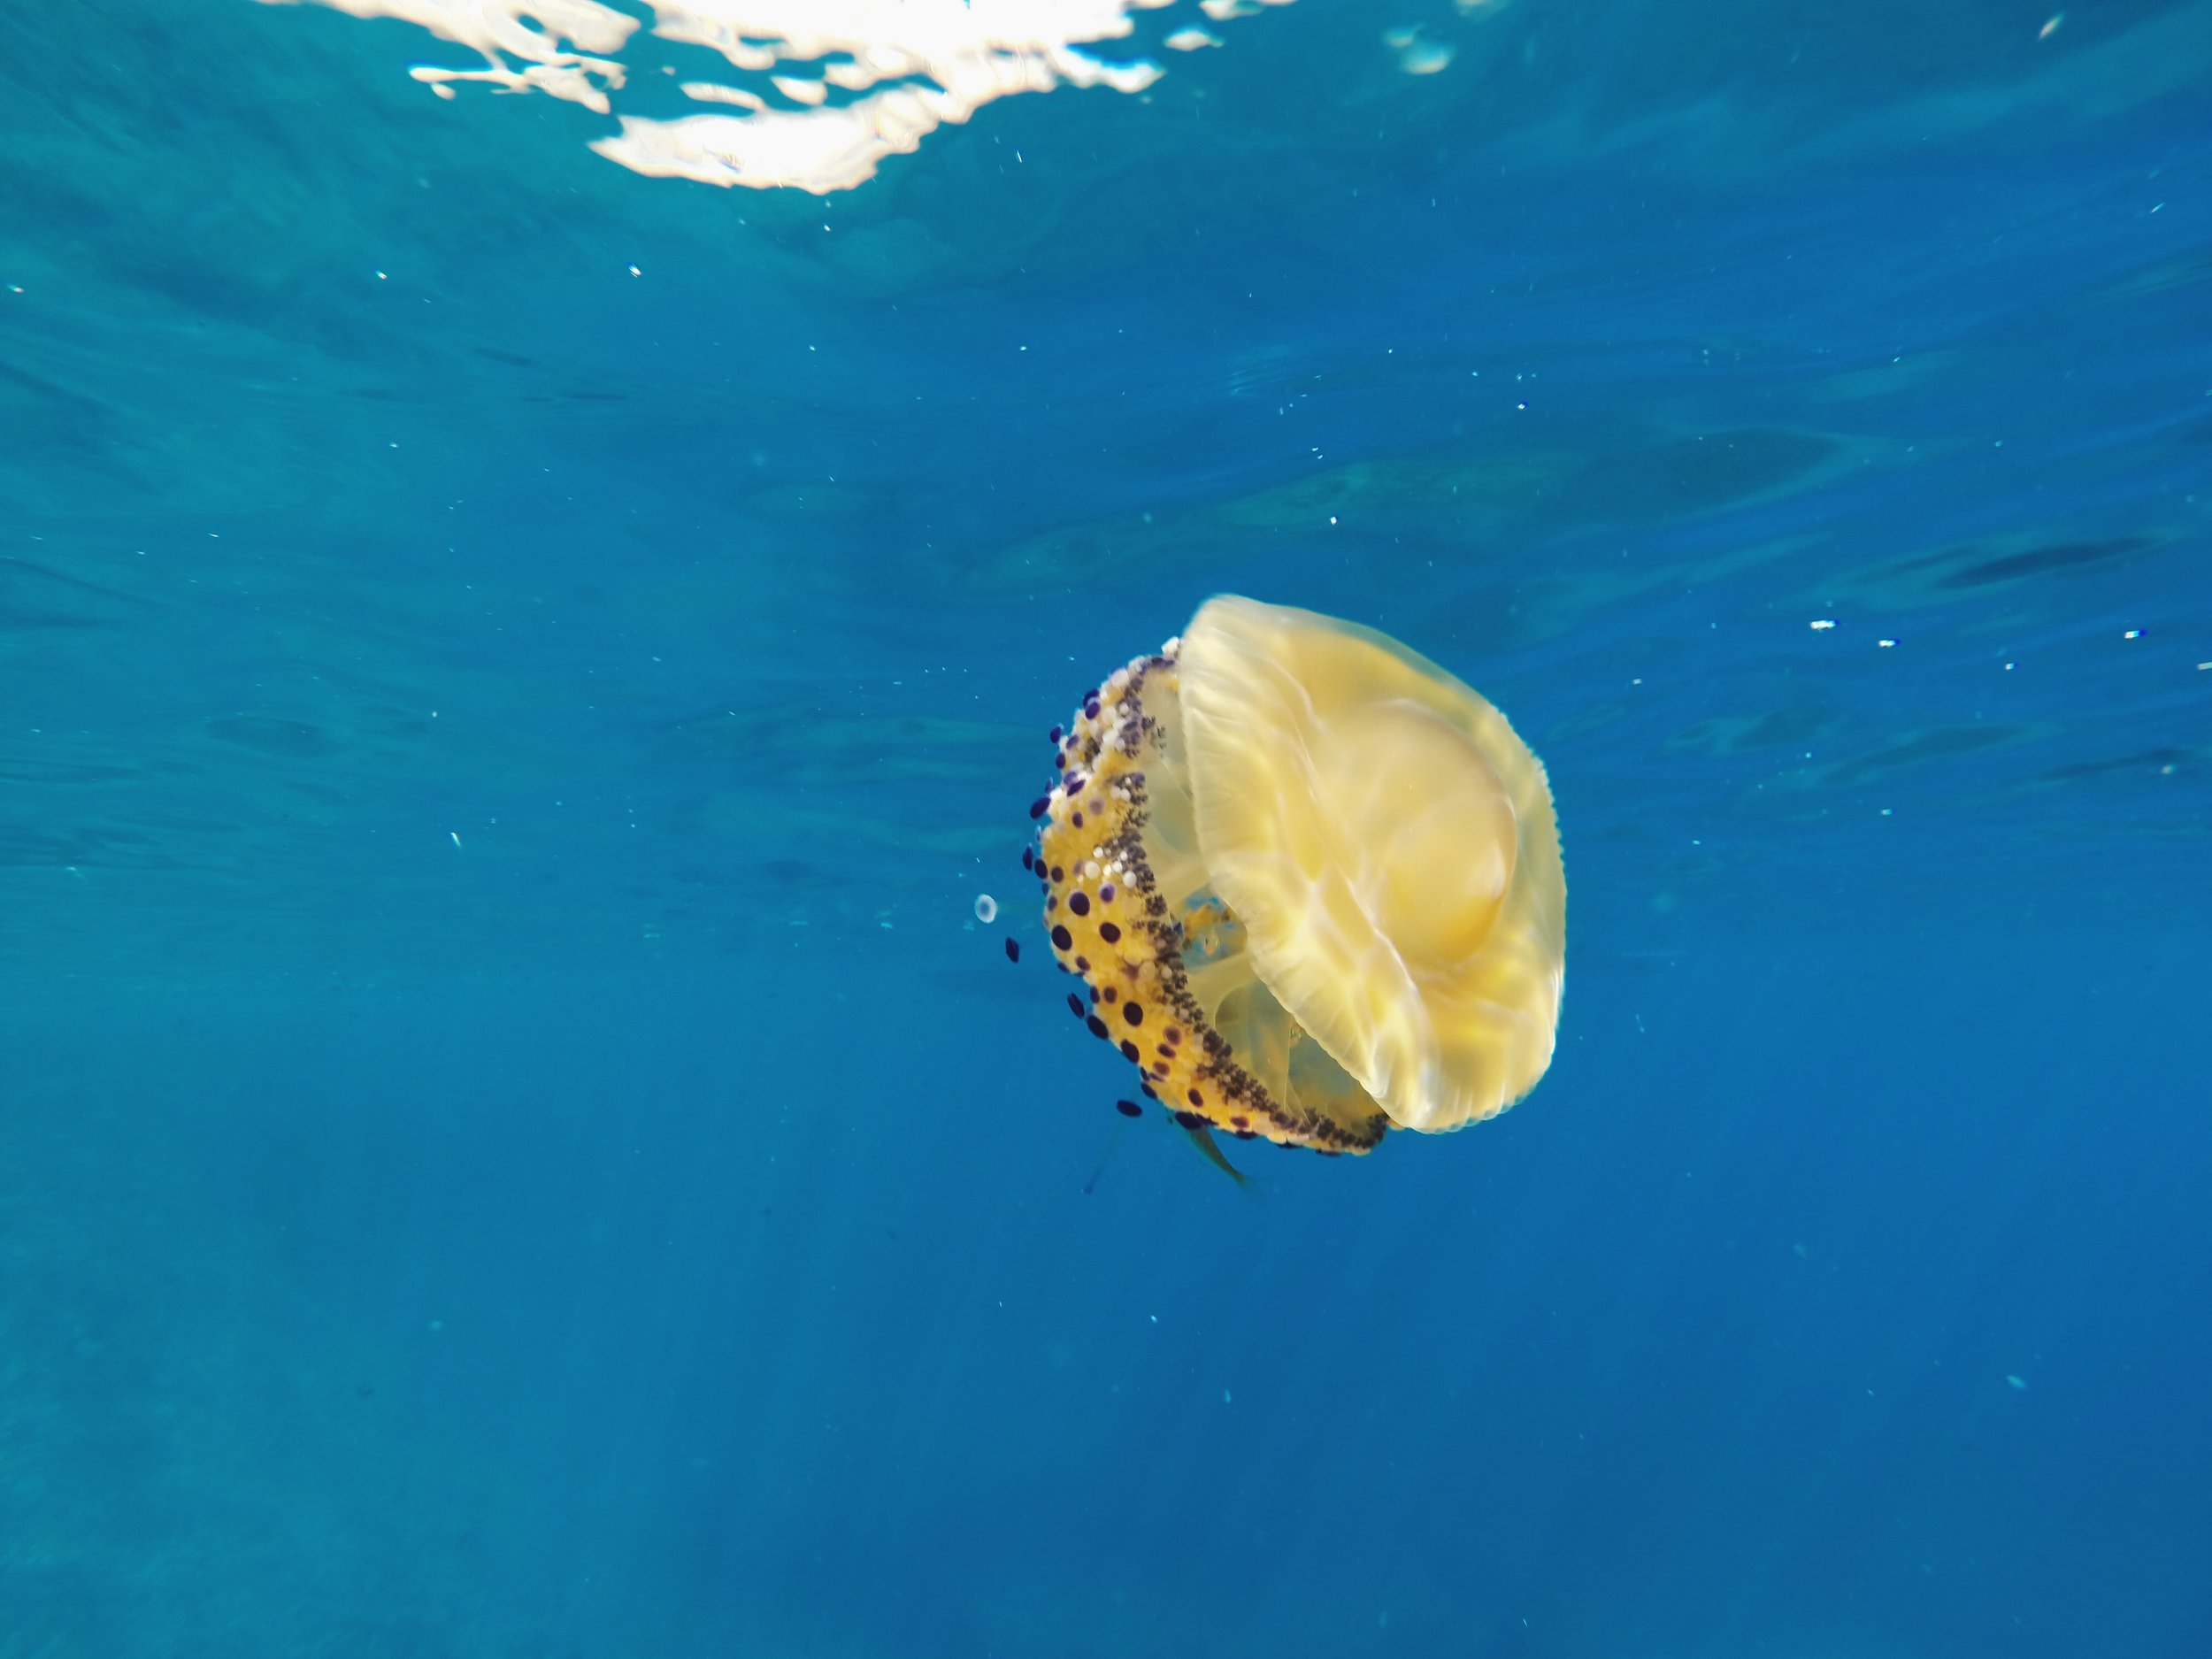 A fried egg jellyfish at Grotta del Soffio. The water was so clear!